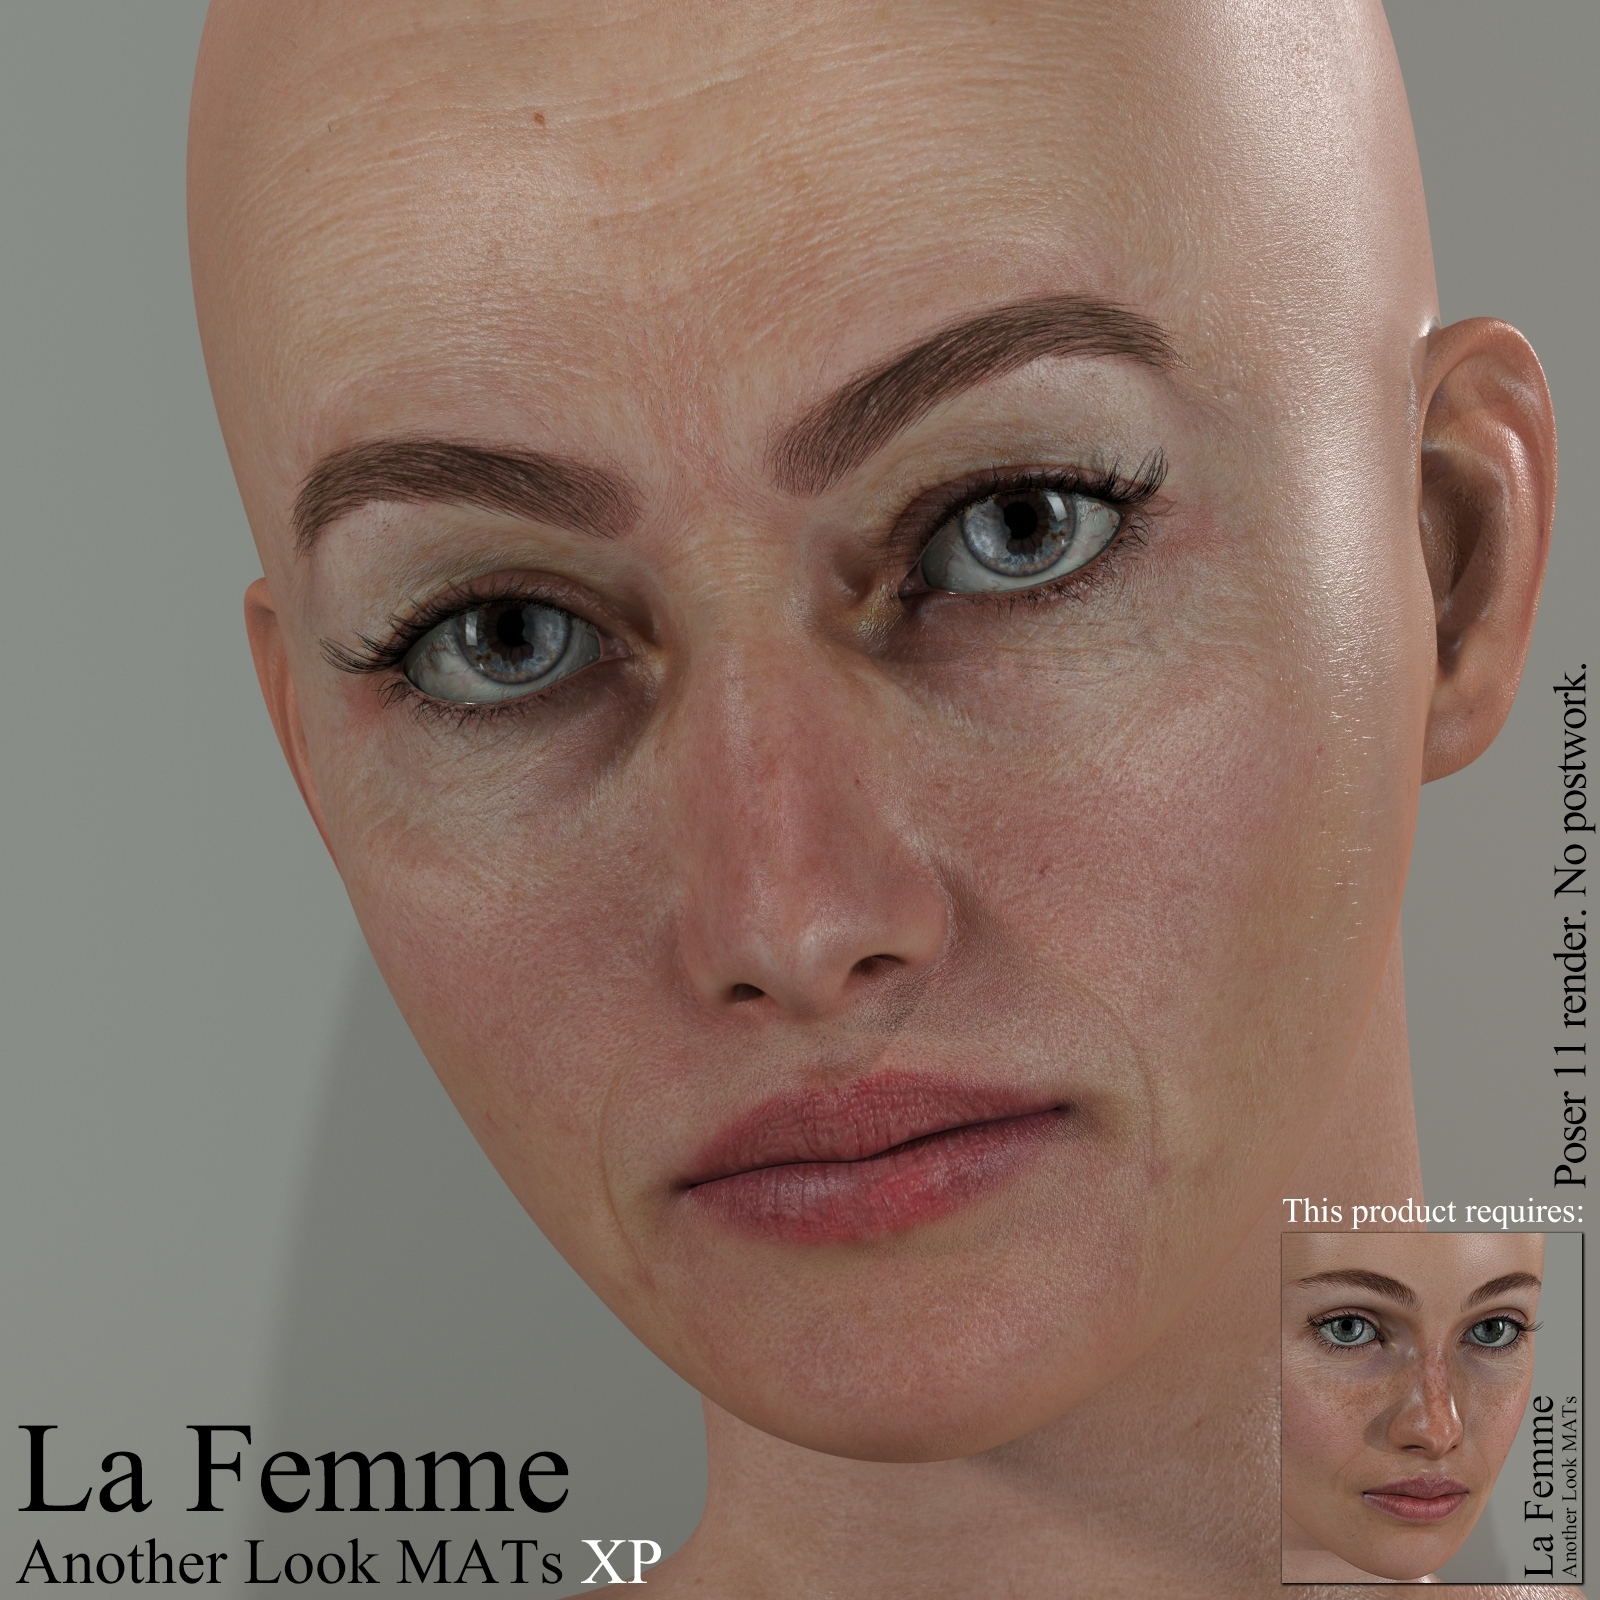 La Femme - Another Look MATs XP